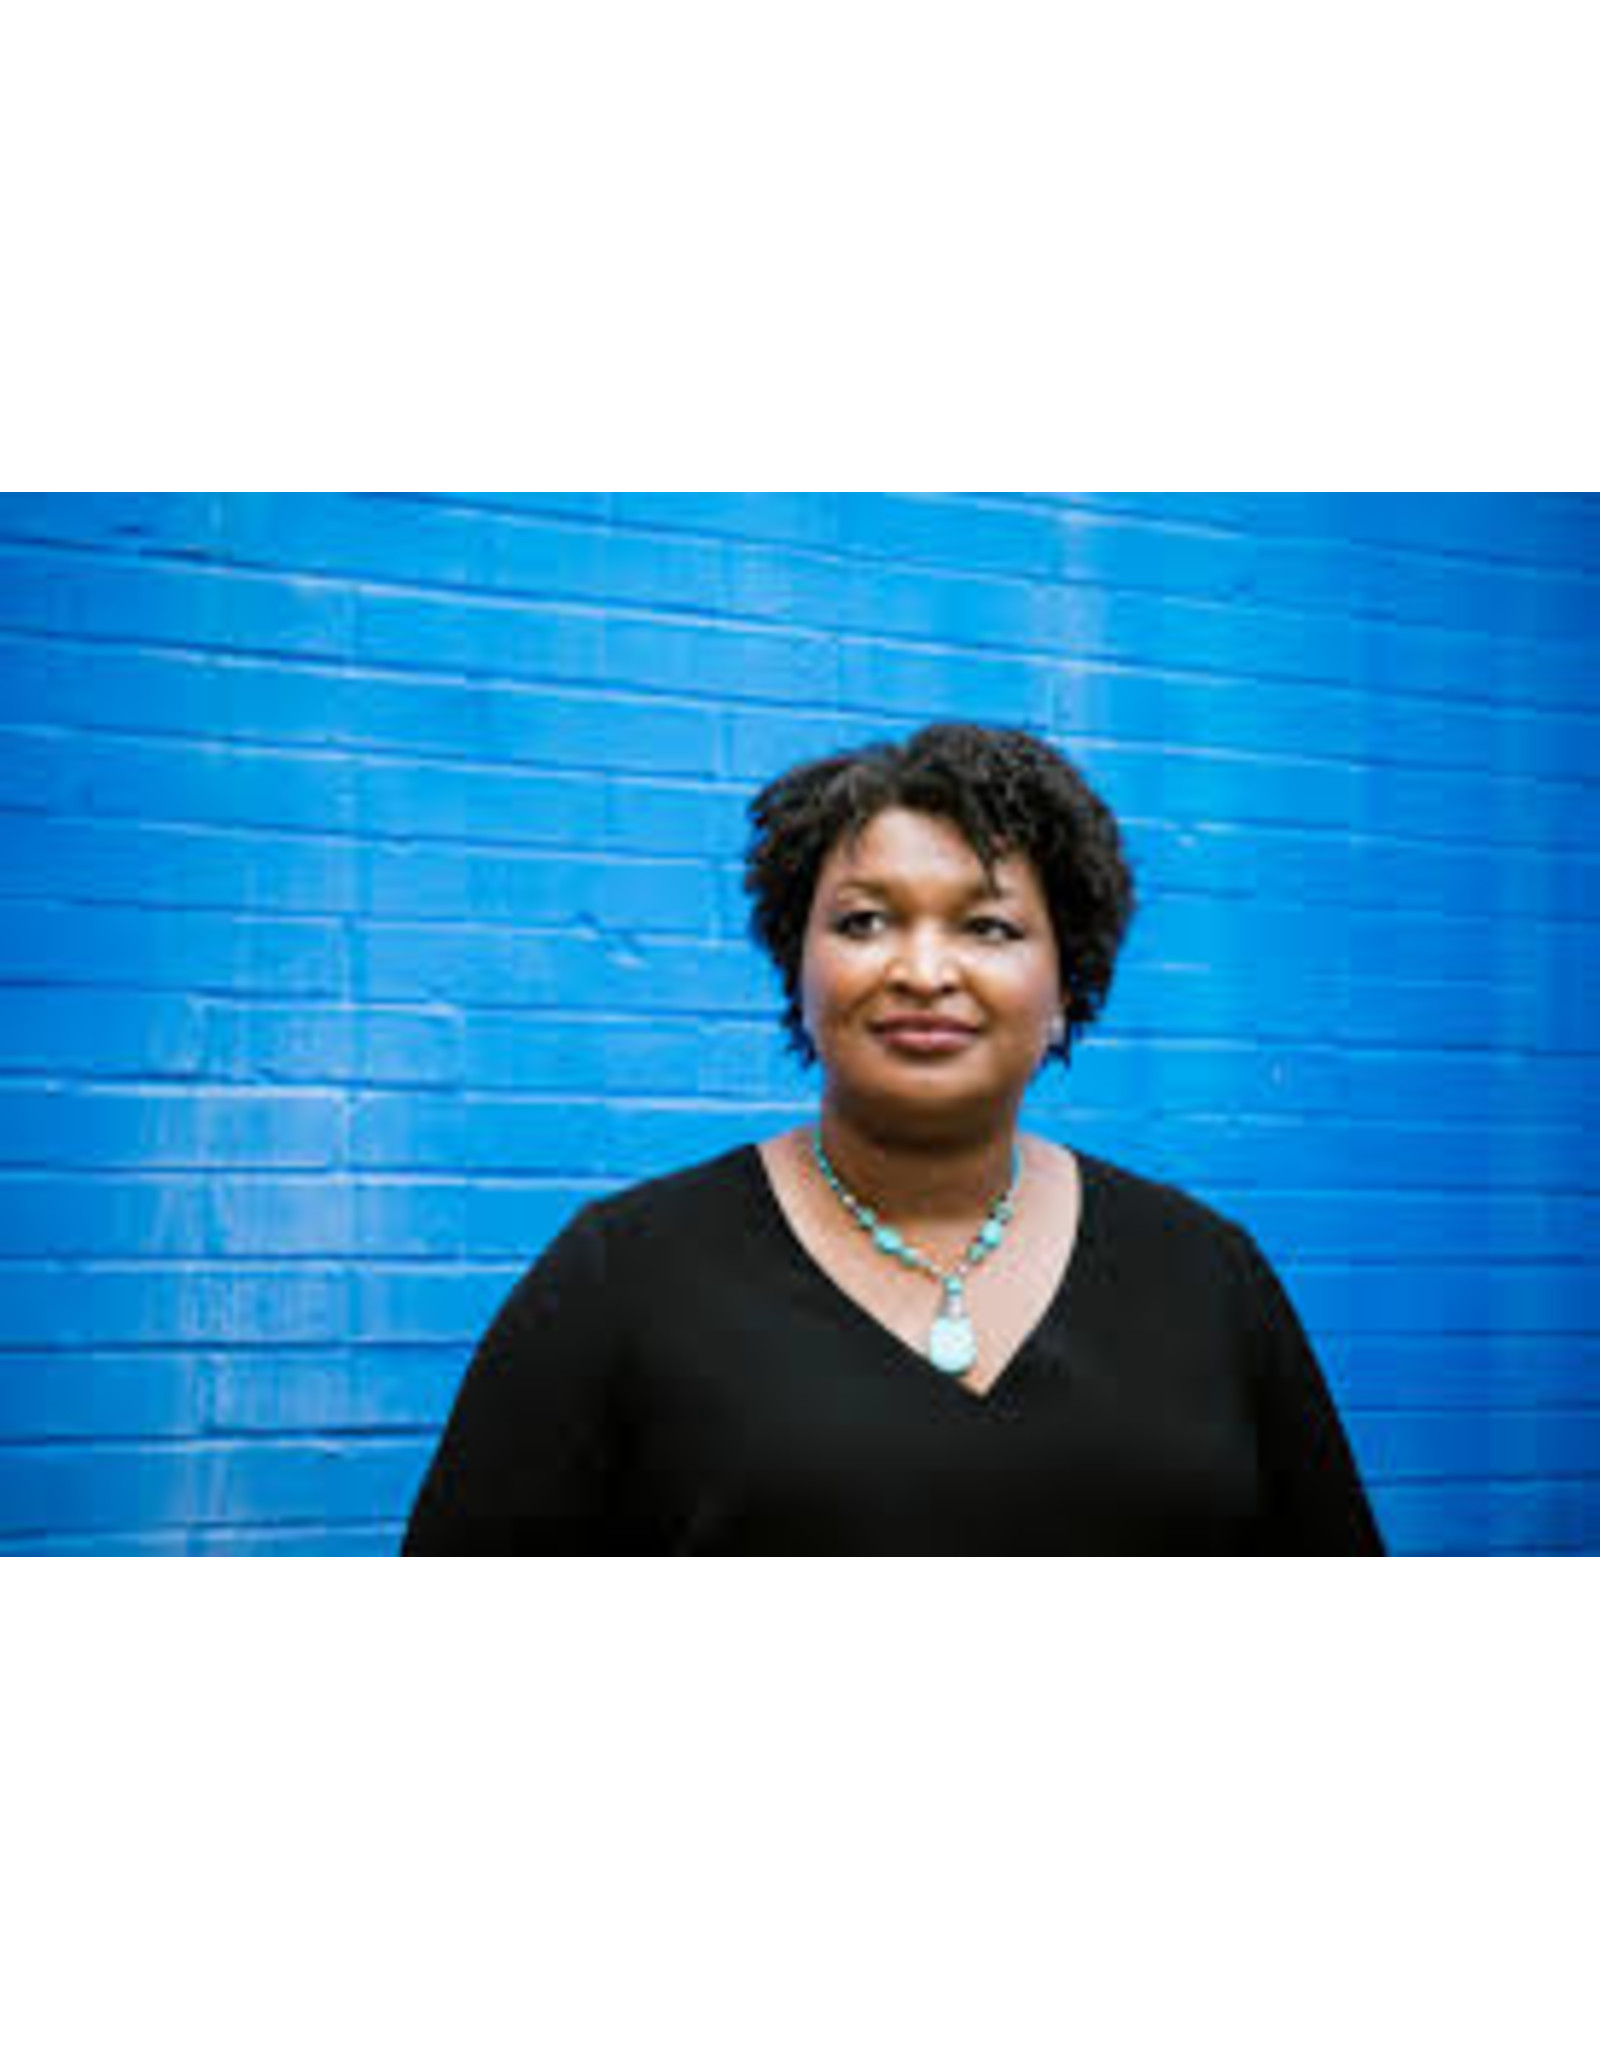 Books Our Time is Now by Stacey Abrams